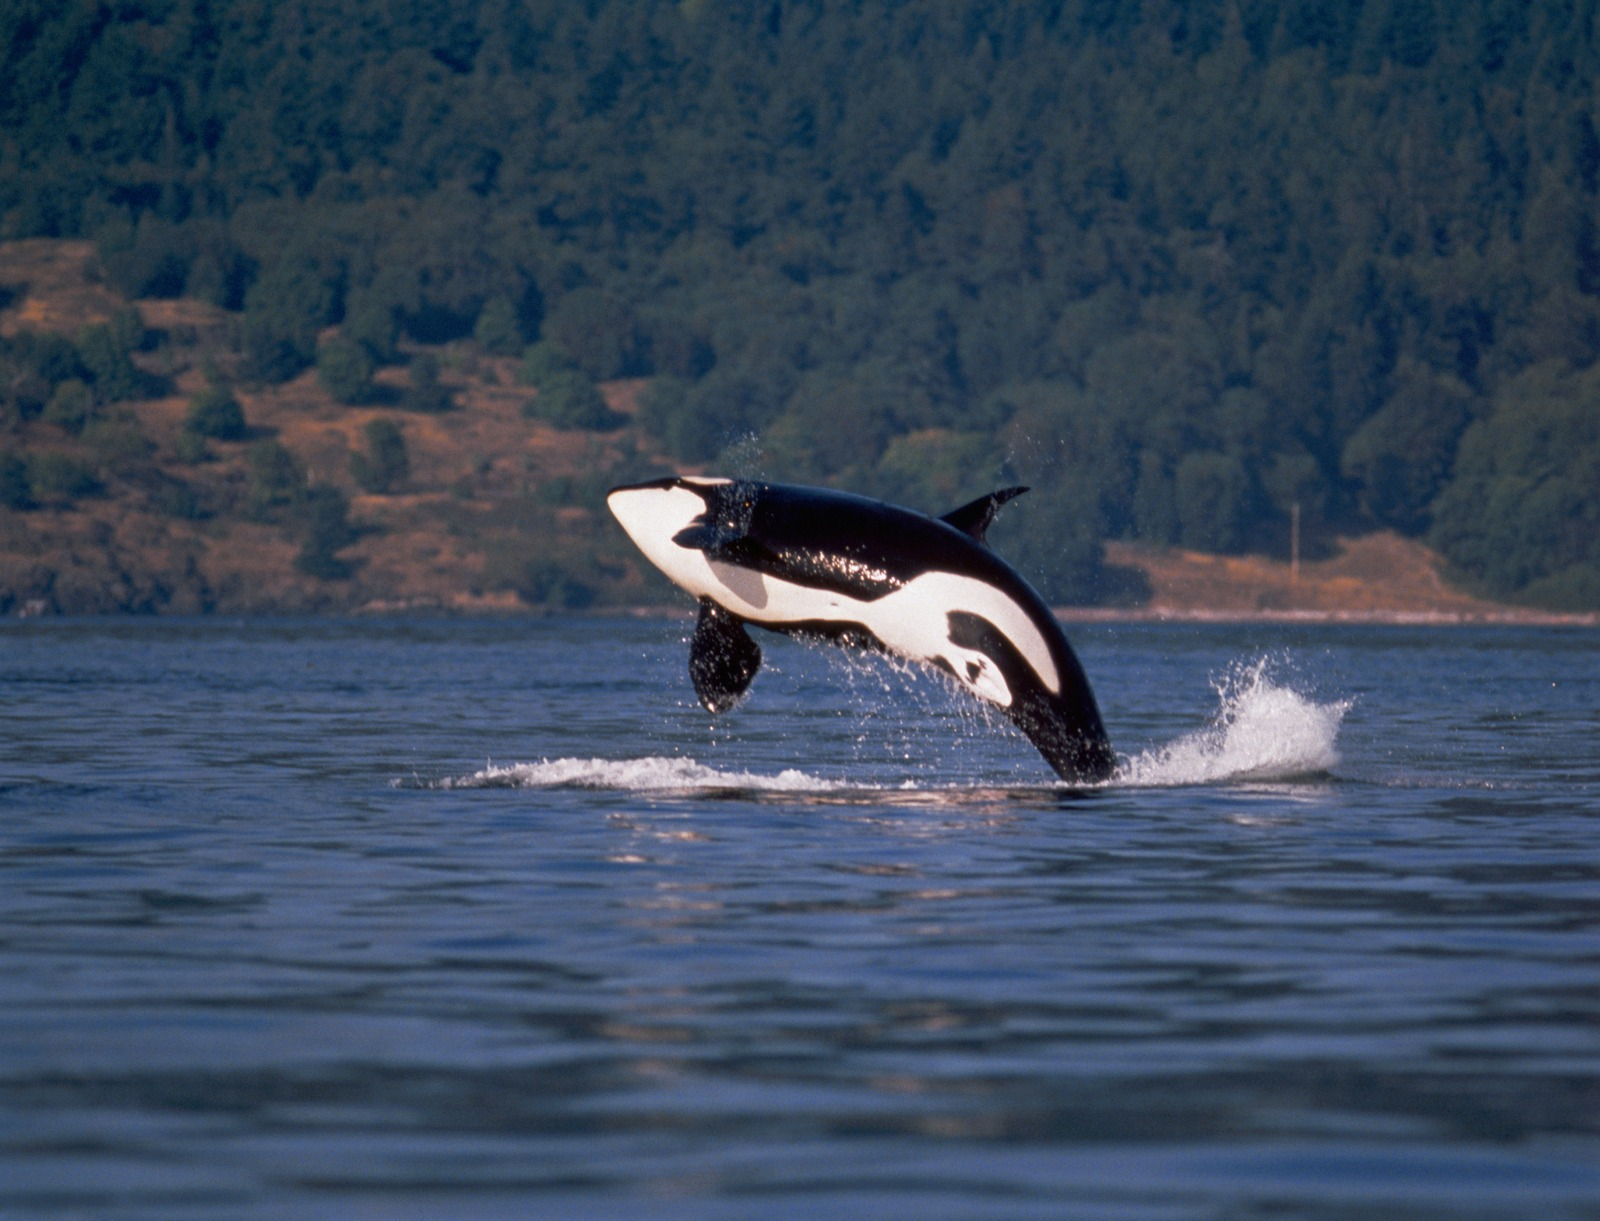 Backgrounds and Wallpapers Sharks and Killer Whales Wallpaper Set 2 1600x1221